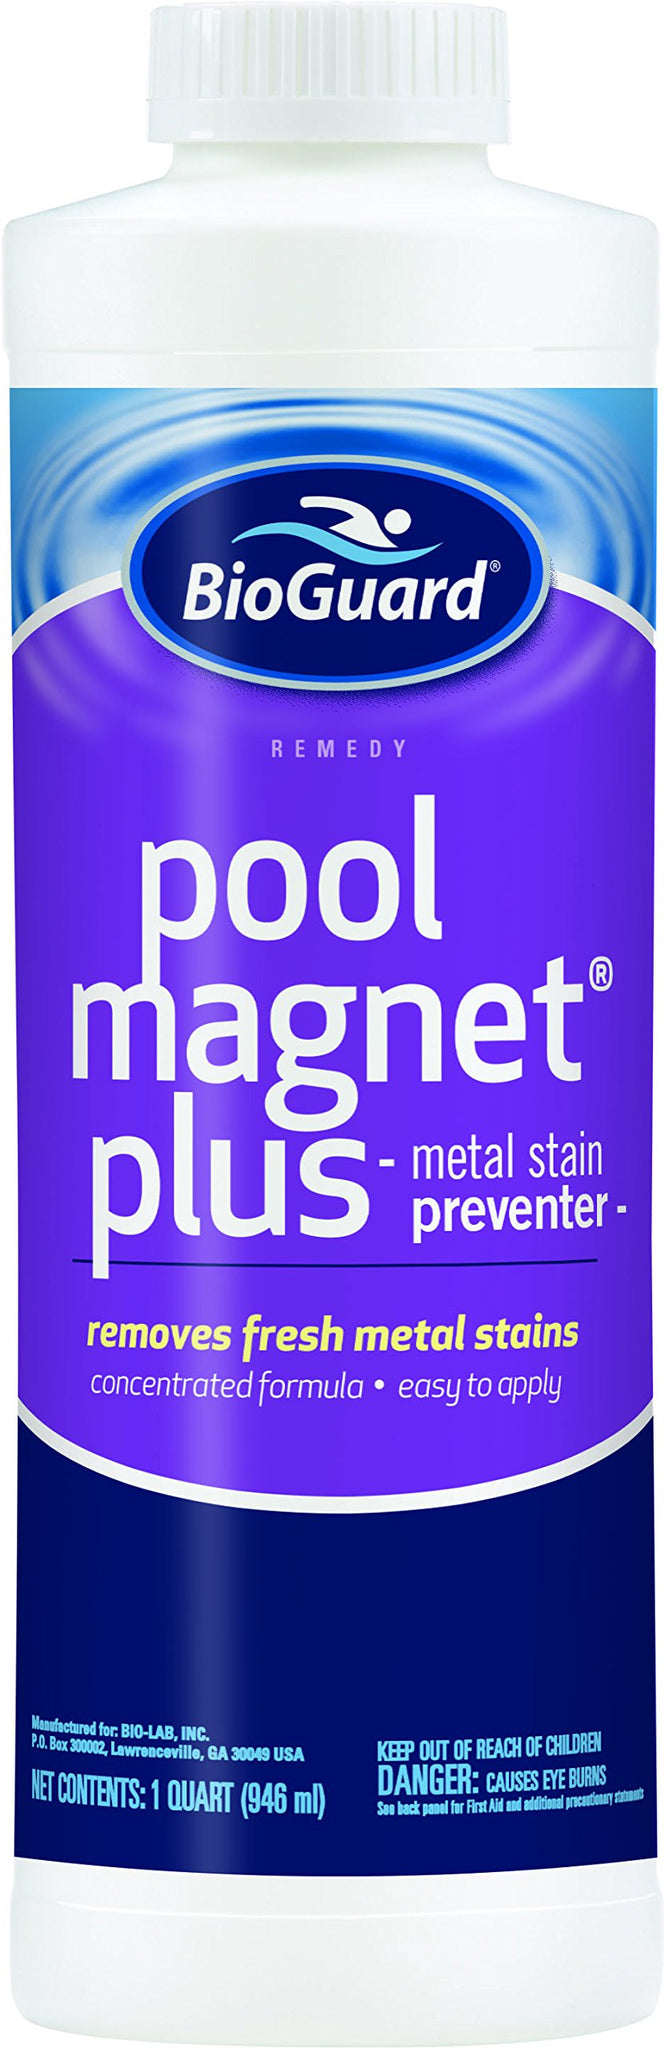 BioGuard Pool Magnet Plus Metal Stains Remover and Preventer